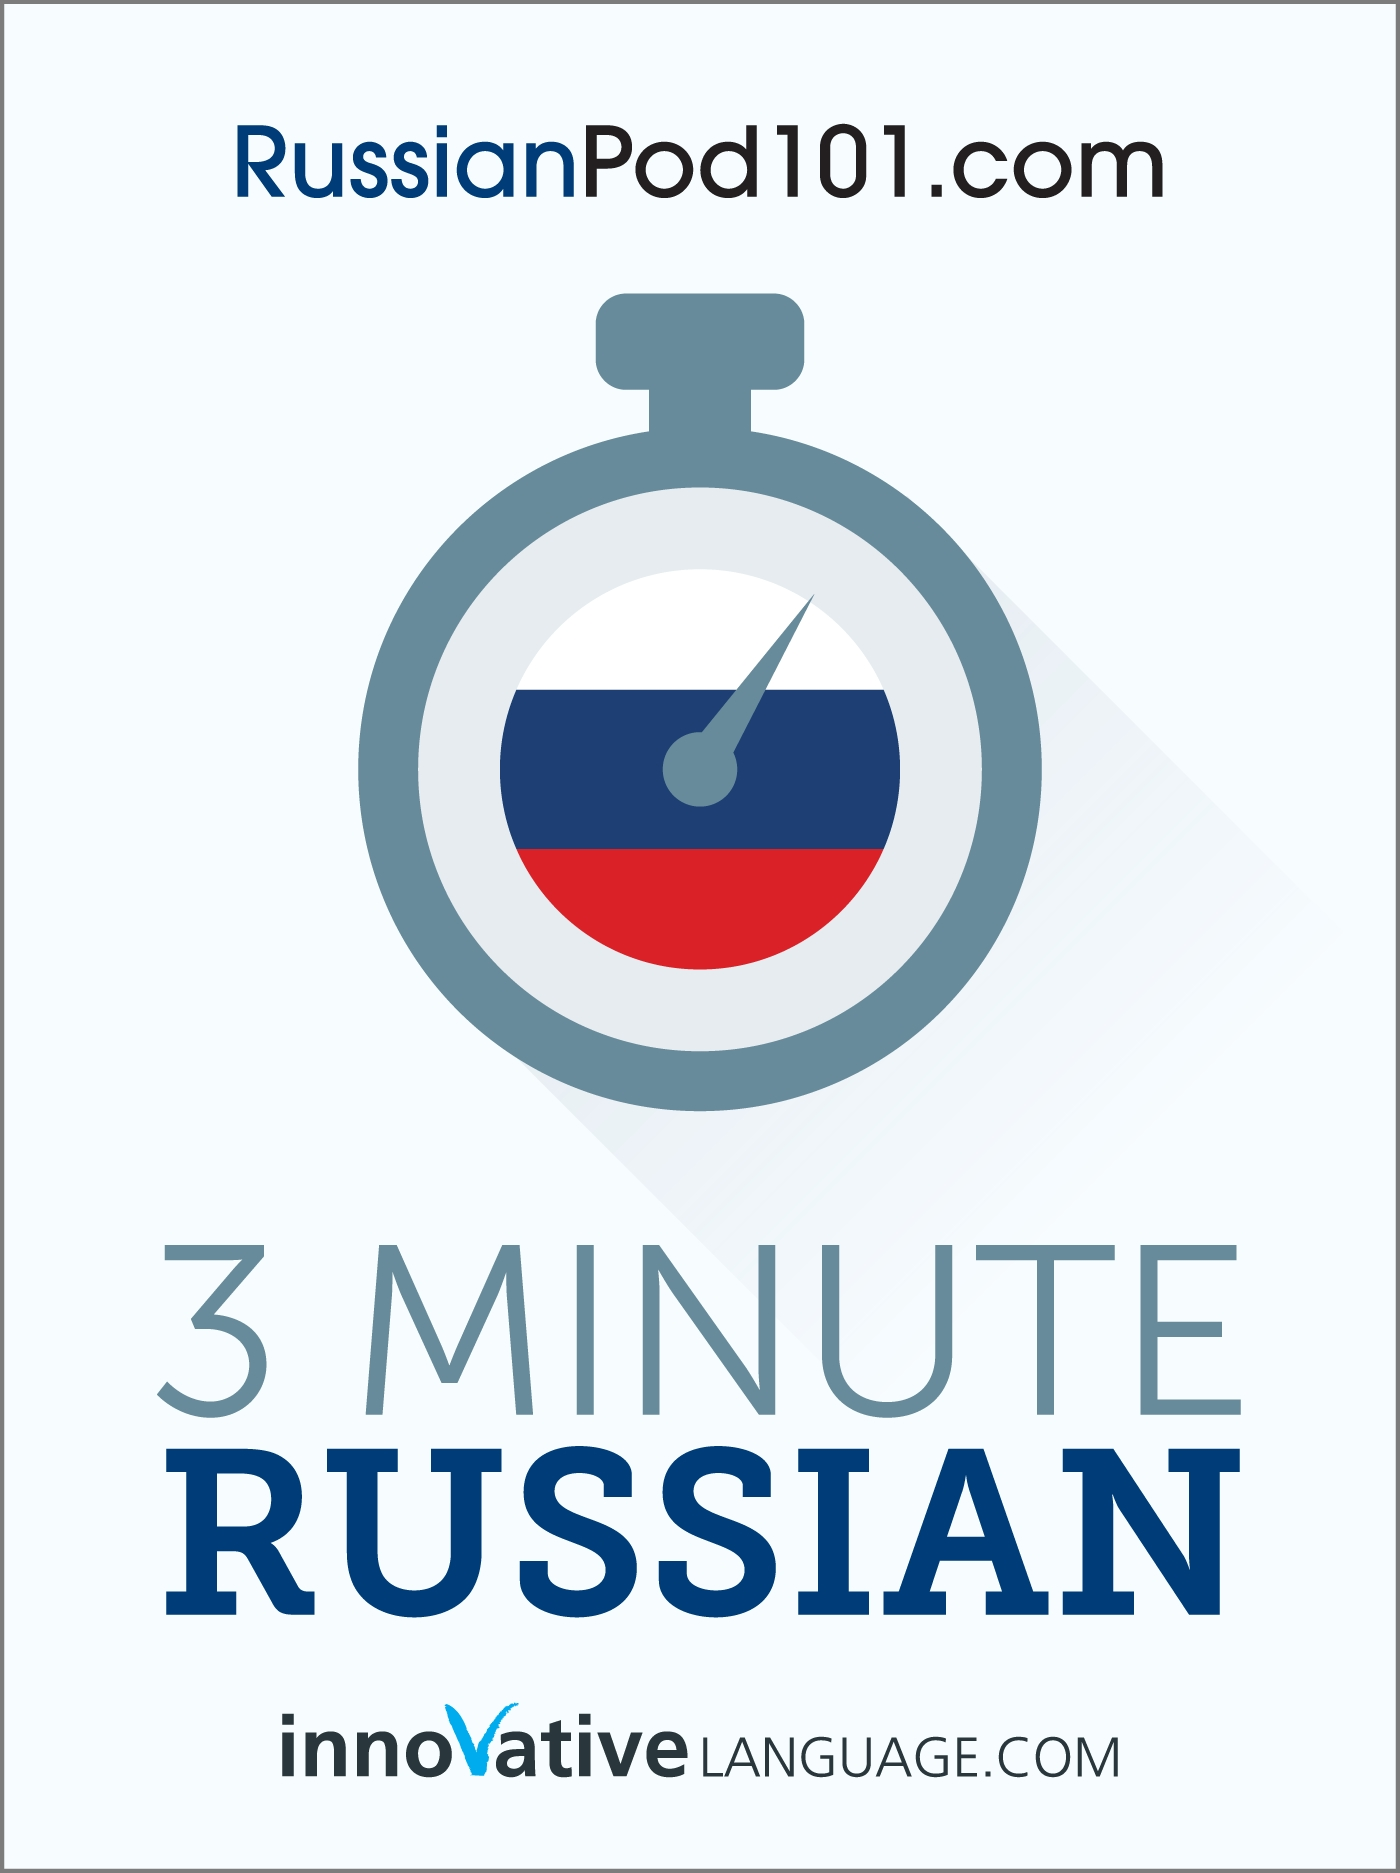 [eBook] 3-Minute Russian - 25 Lesson Series